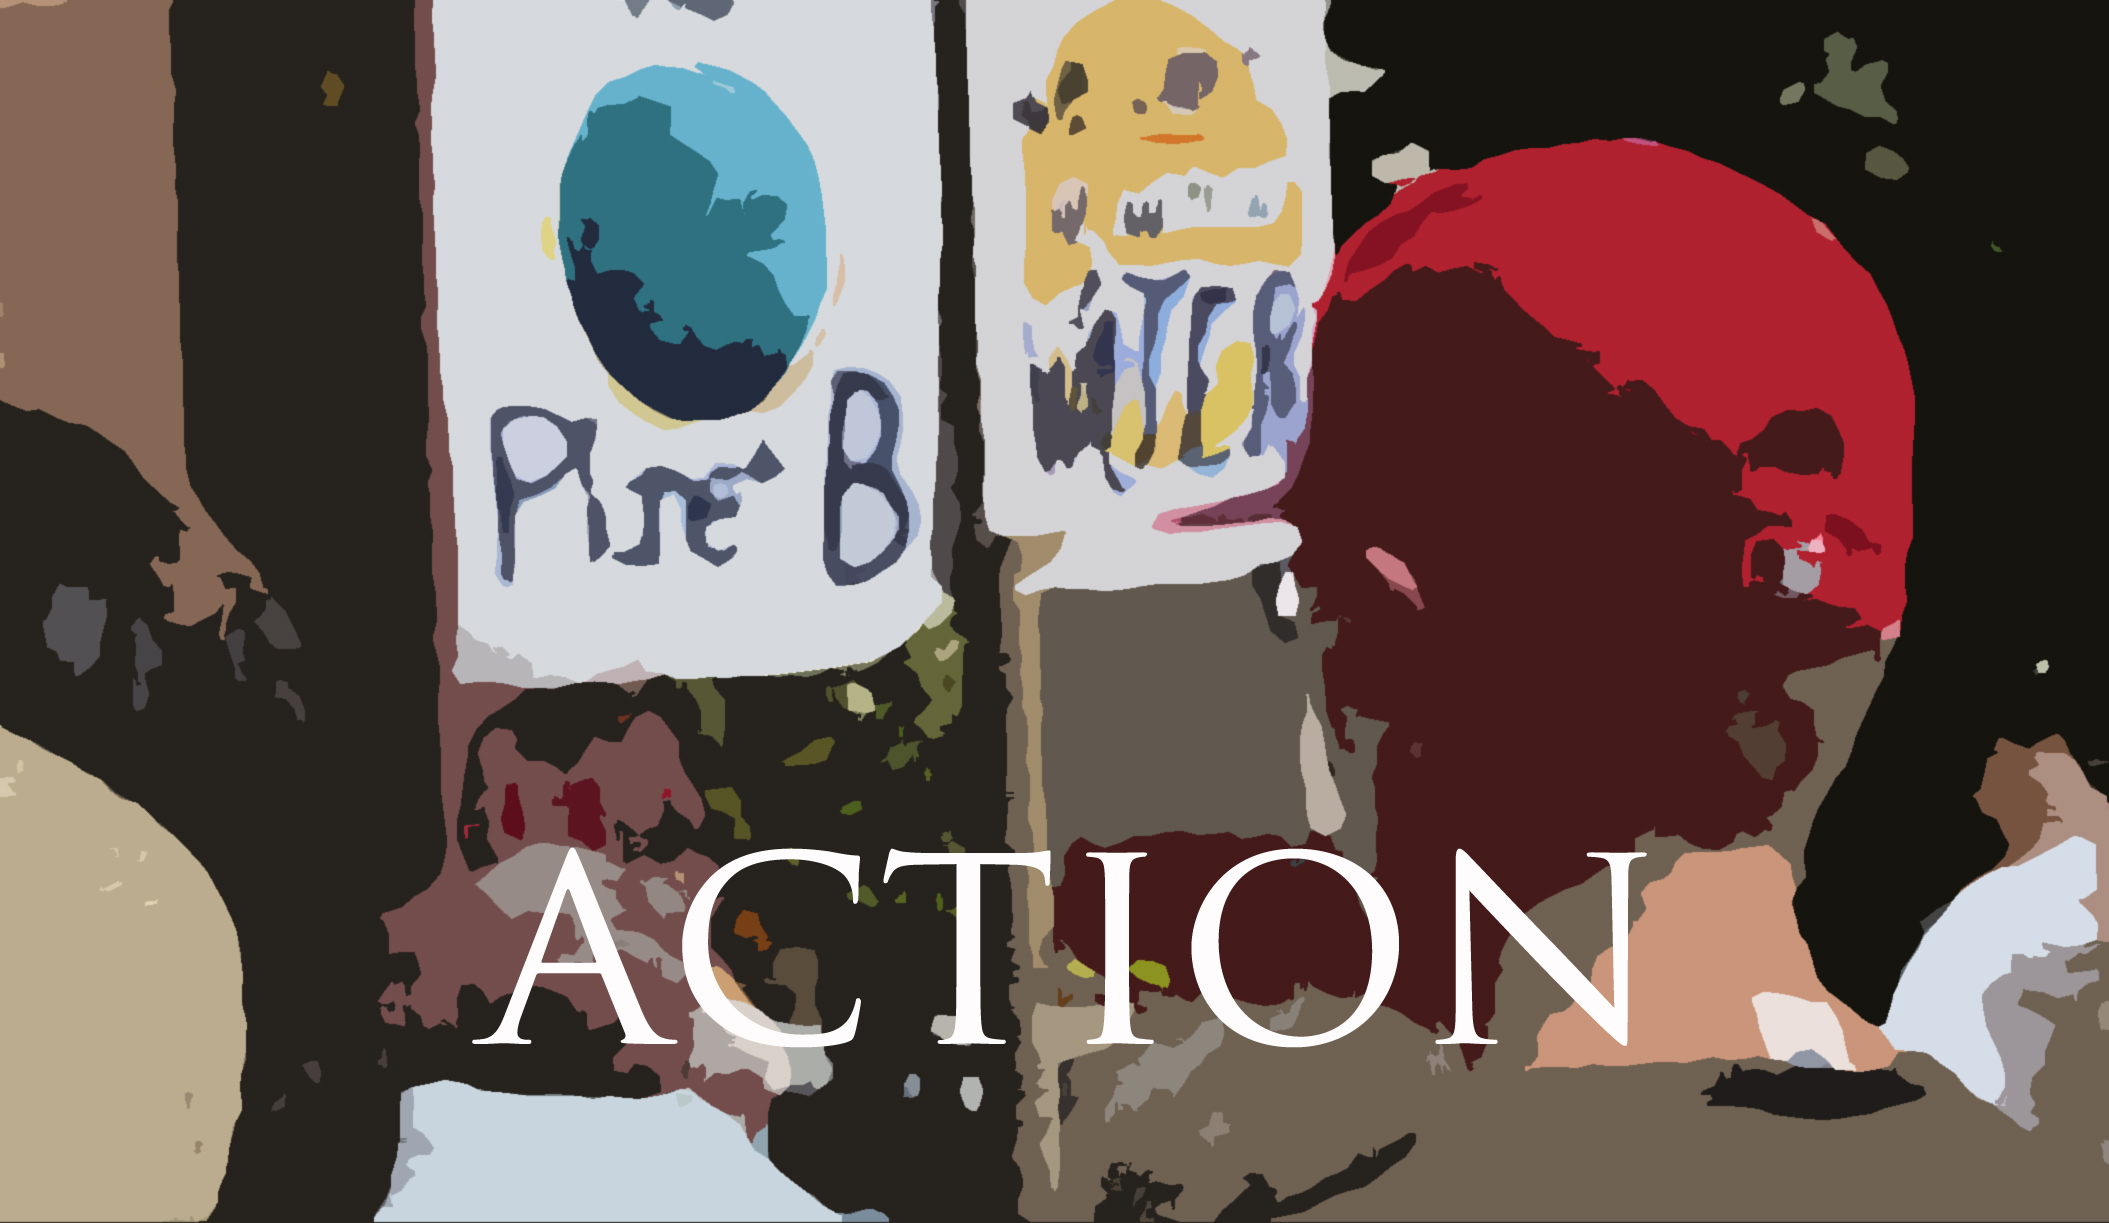 Action: Against